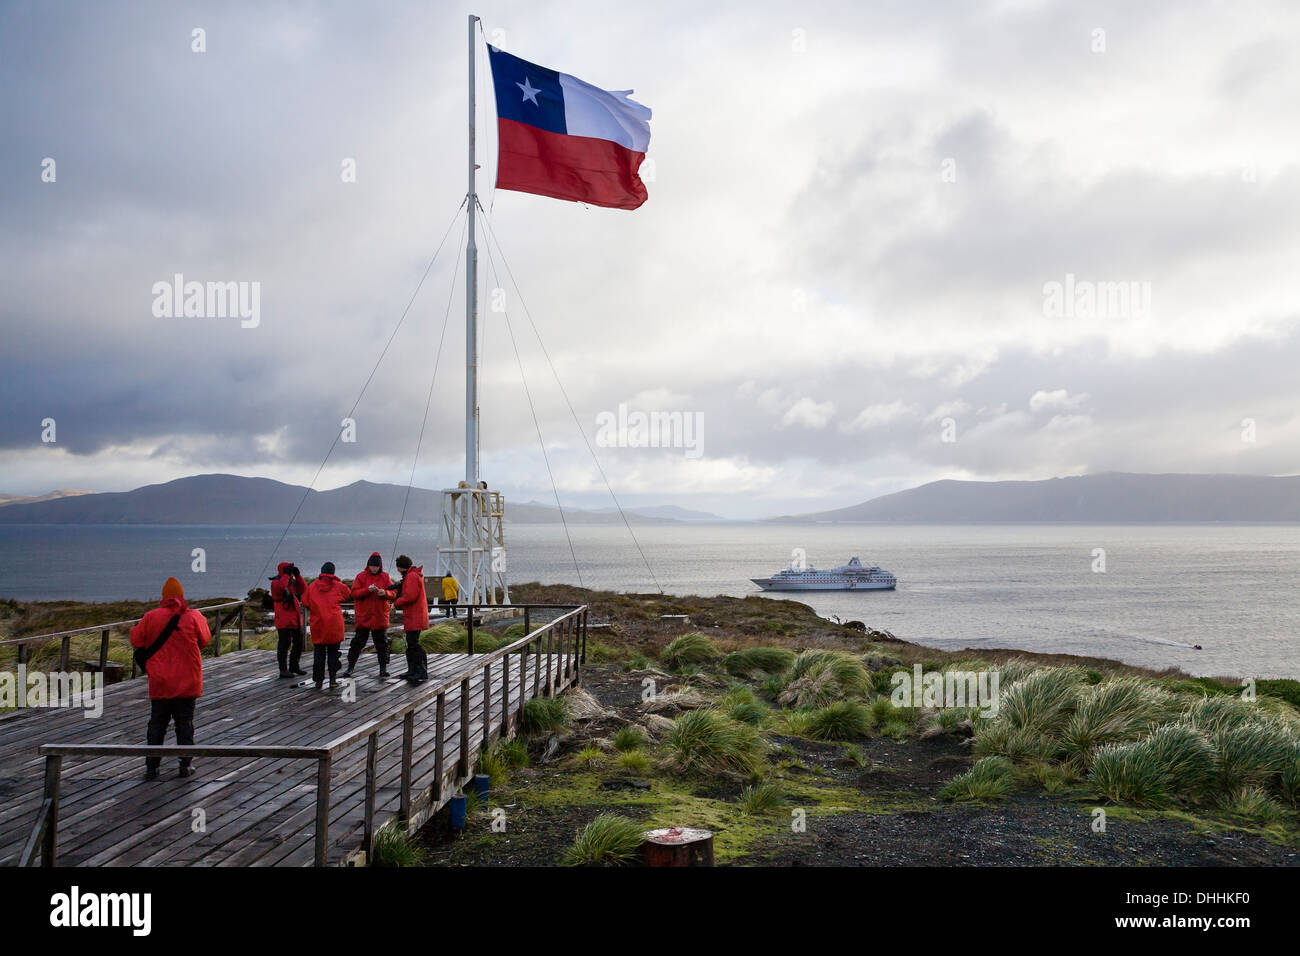 Chilean flag at Cape Horn, Cape Horn National Park, Cape Horn Island, Terra del Fuego, Patagonia, Chile, South America - Stock Image